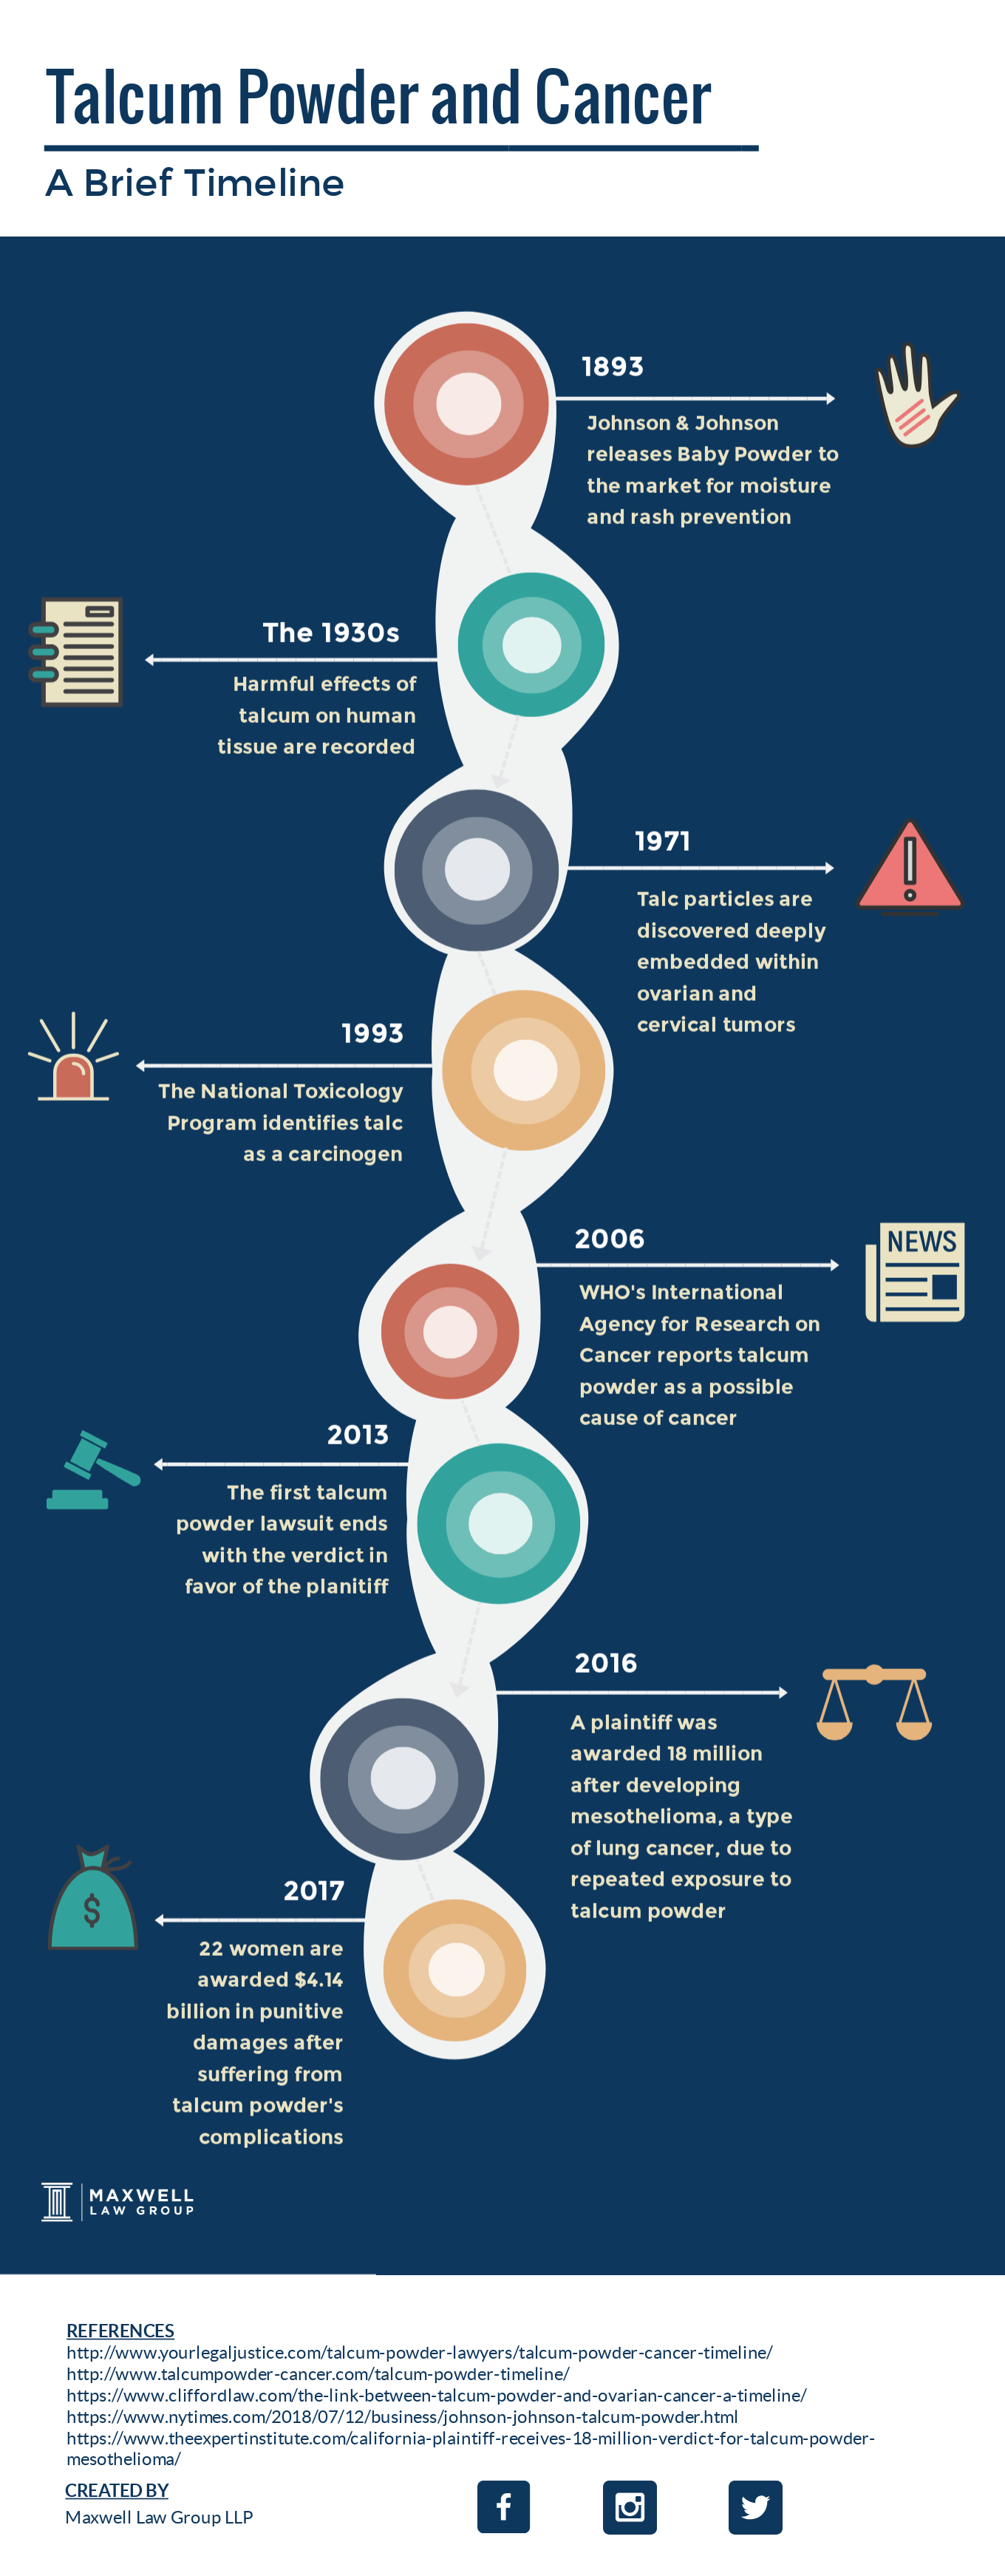 talcum powder cancer timeline